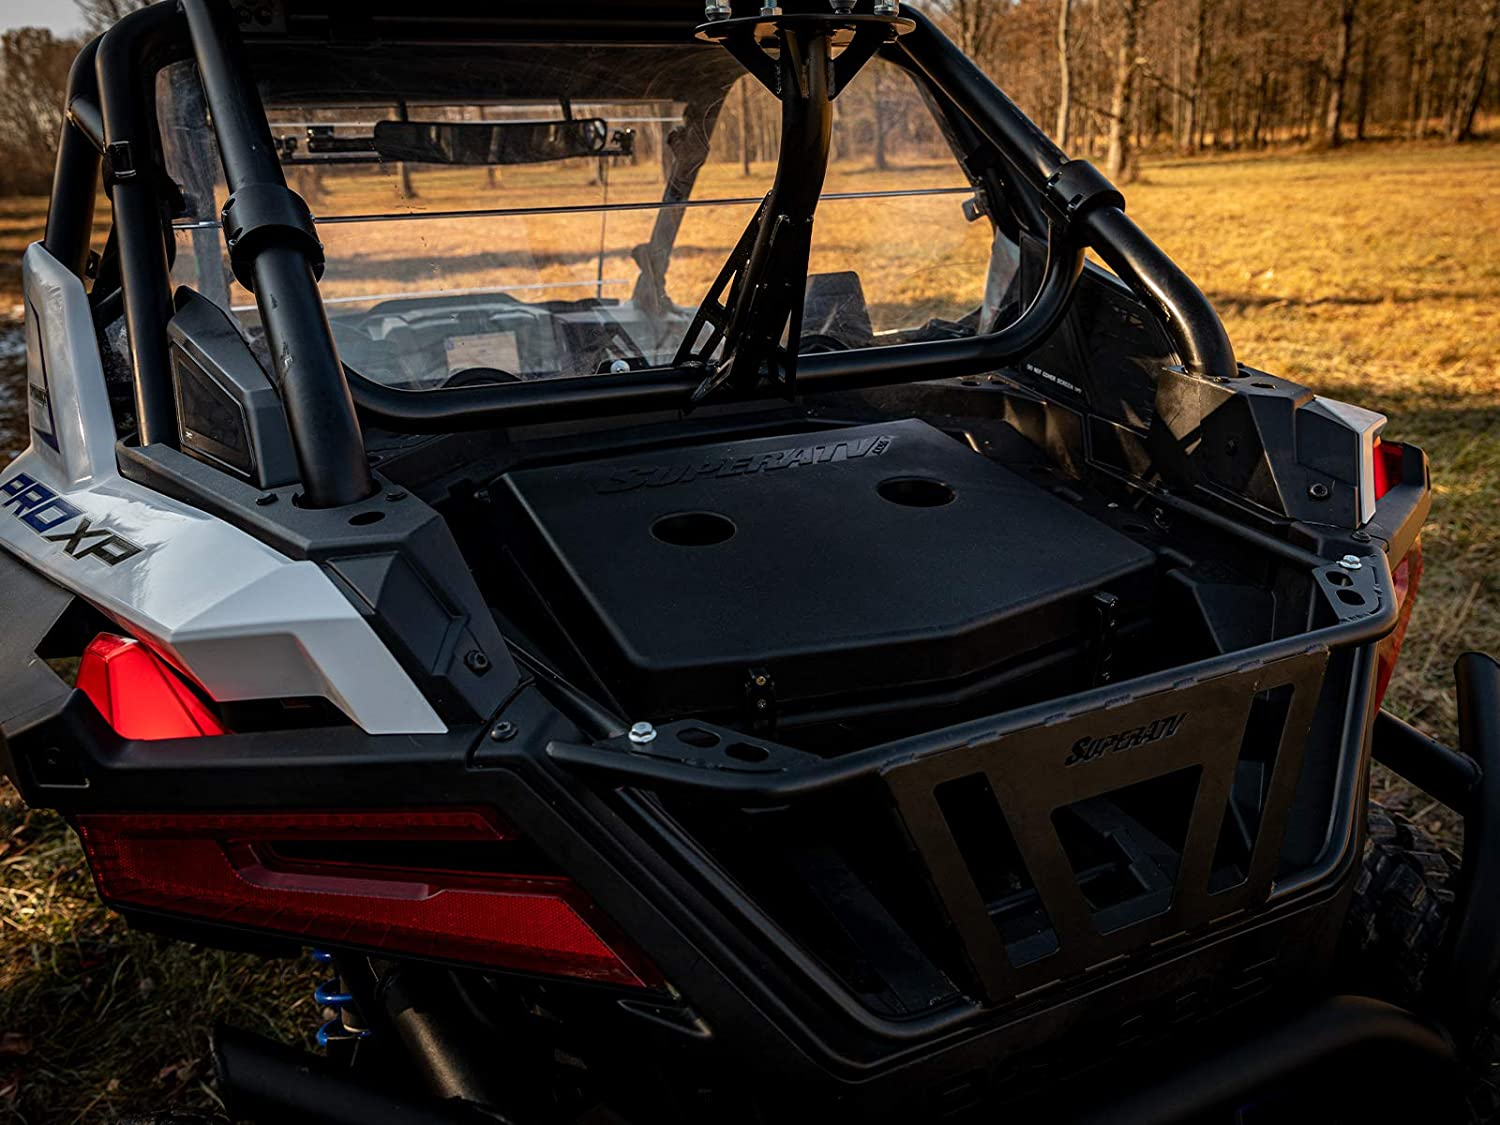 SuperATV Heavy Duty Insulated Rear Cooler//Cargo Box for Polaris RZR PRO XP 2020+ Sealed Lid Keeps Ice In /& Mud Out!